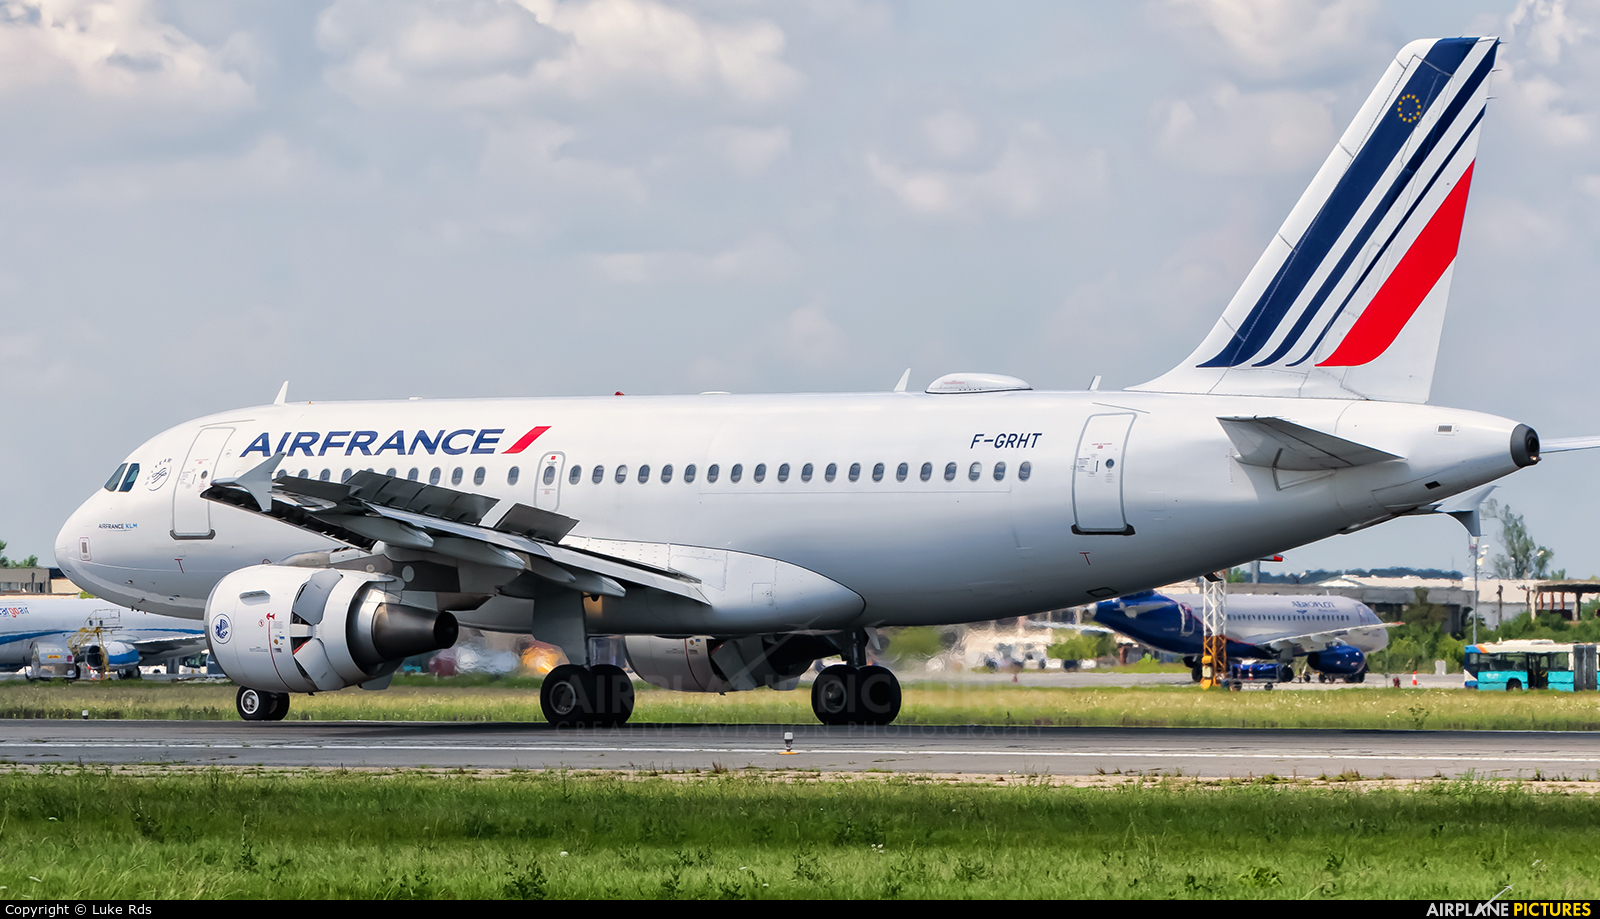 Air France F-GRHT aircraft at Bucharest - Henri Coandă